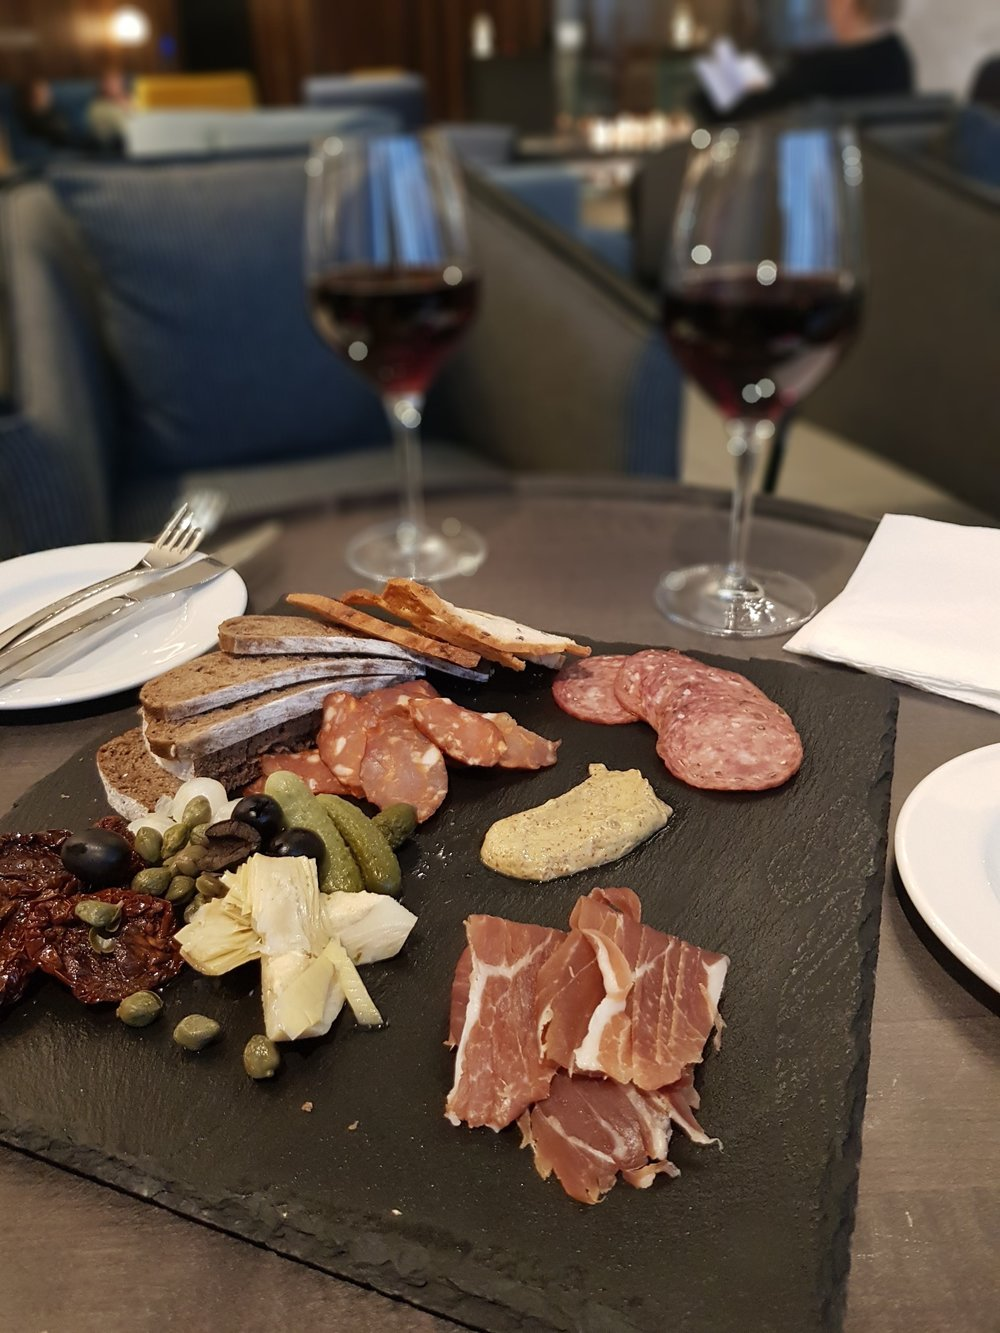 2.   Feel like a tourist with a hotel platter and wine at Crowne Plaza